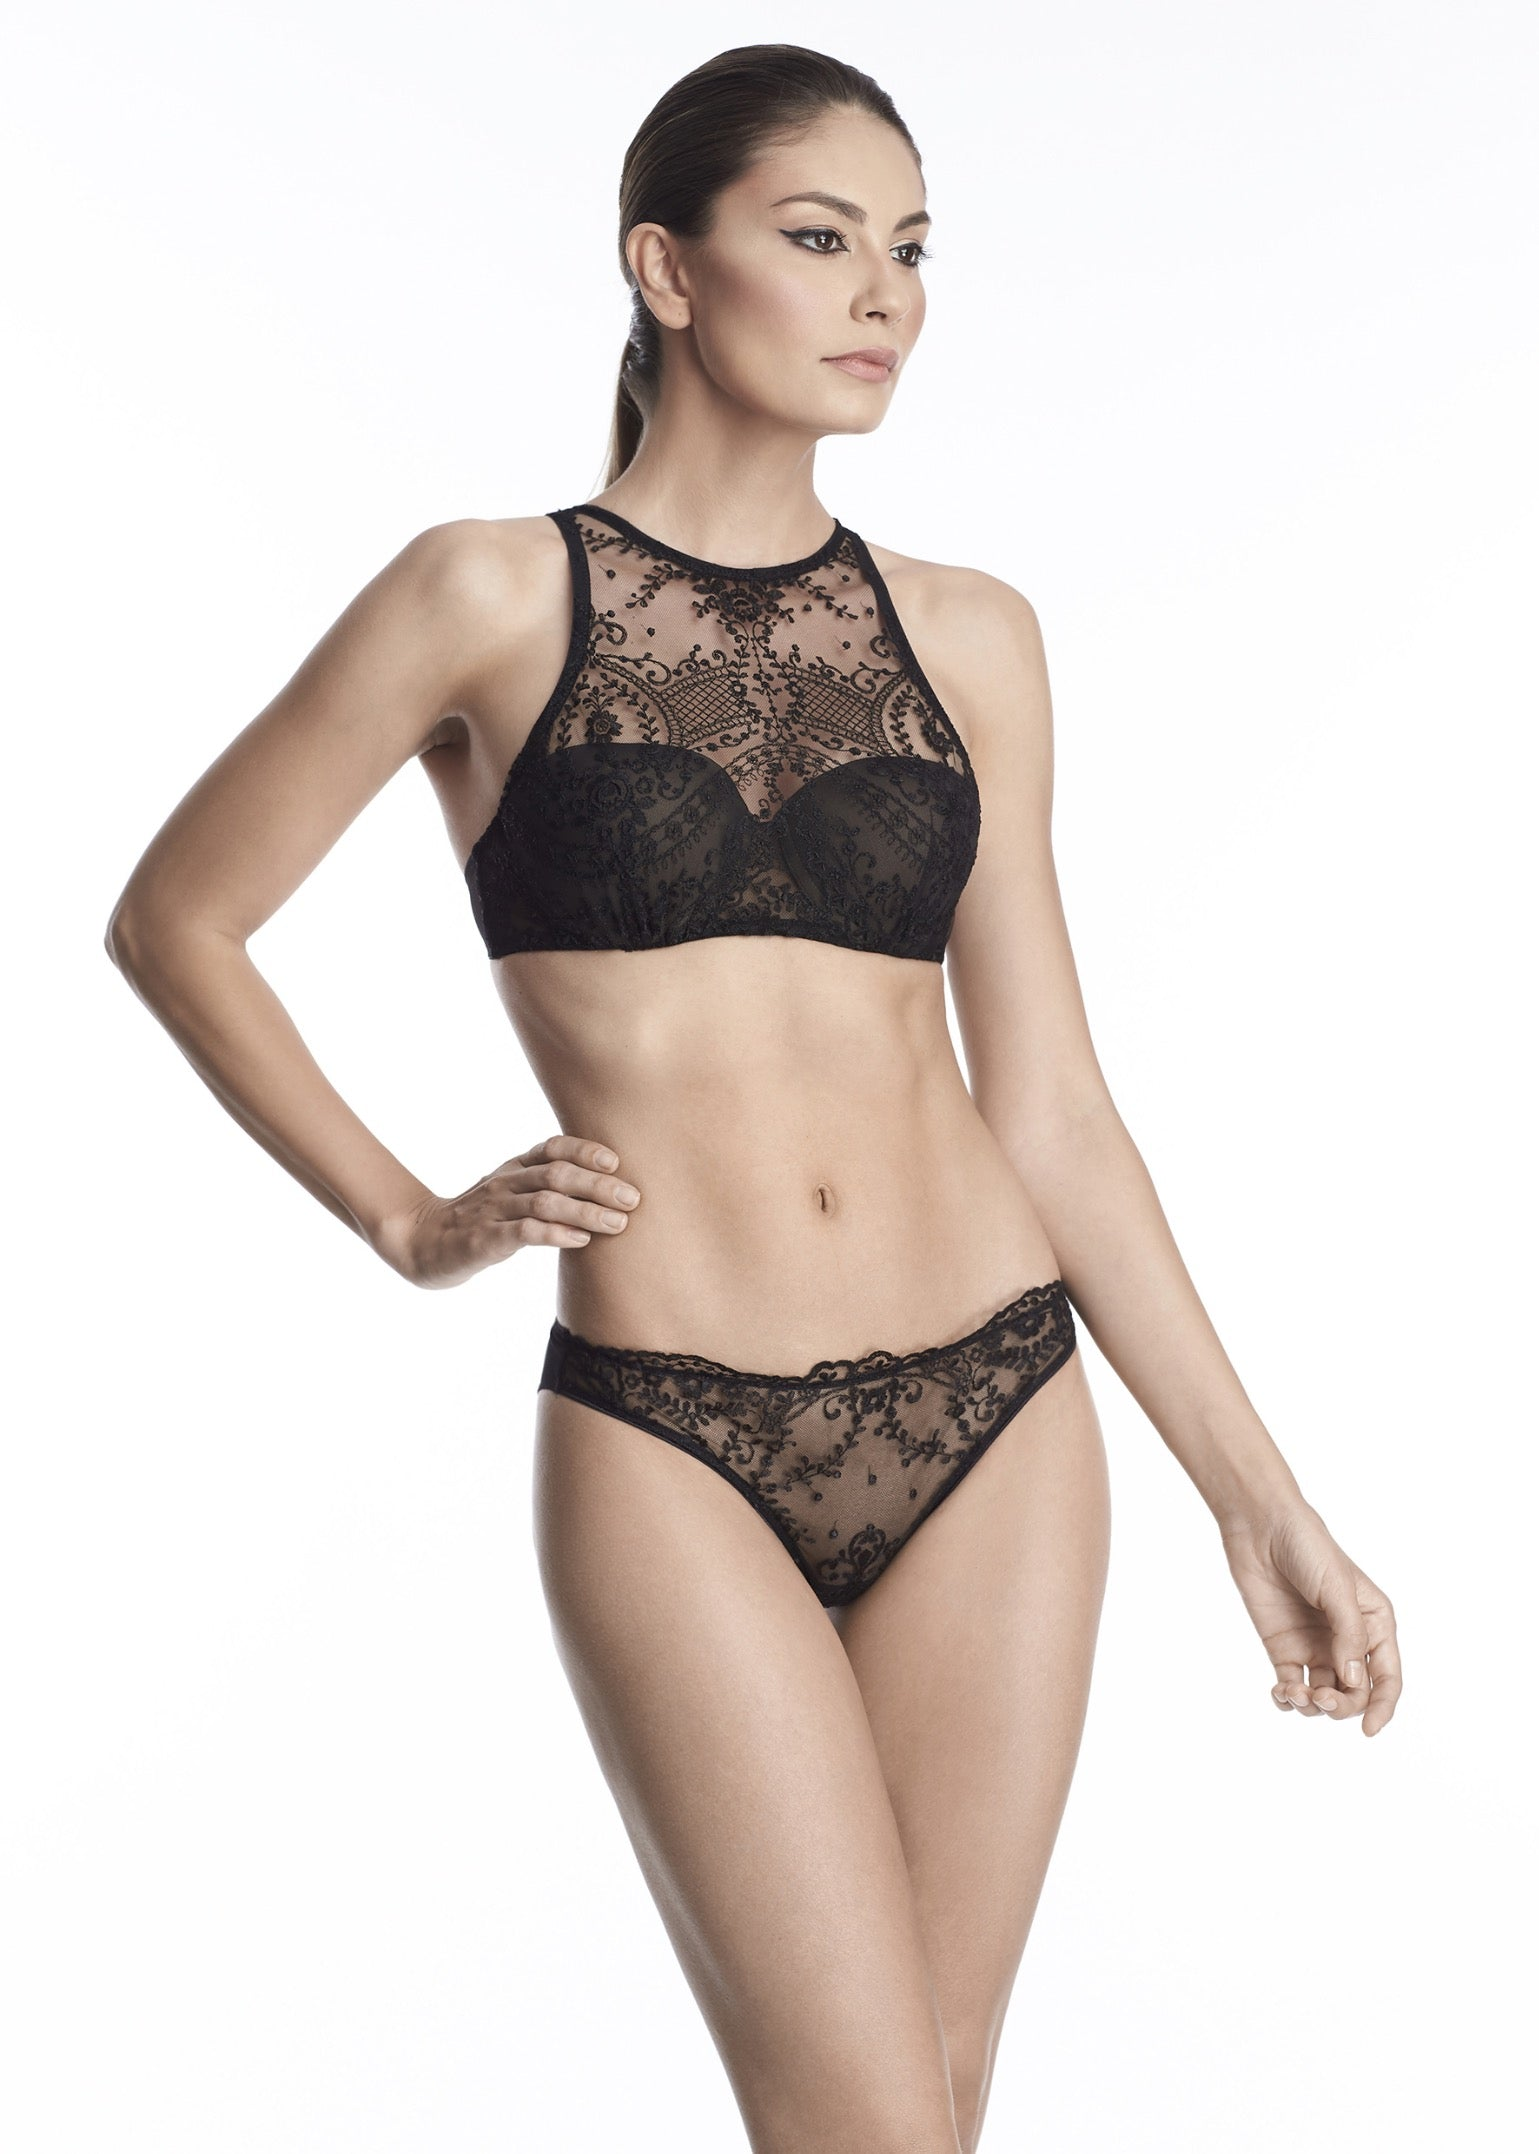 Hollywood Dream High Neck Balconette Bra in Black